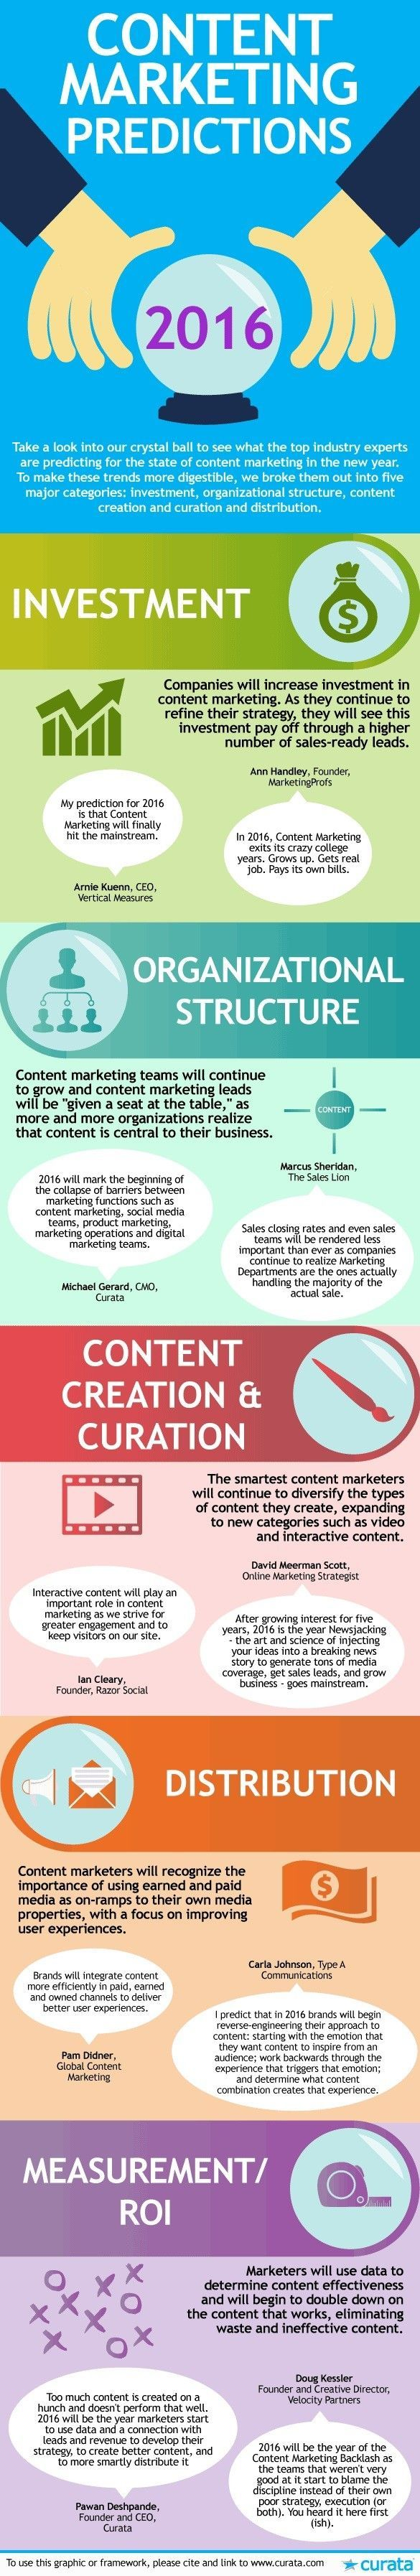 Content - Content Marketing Predictions for 2016 [Infographic] - Ann Handley